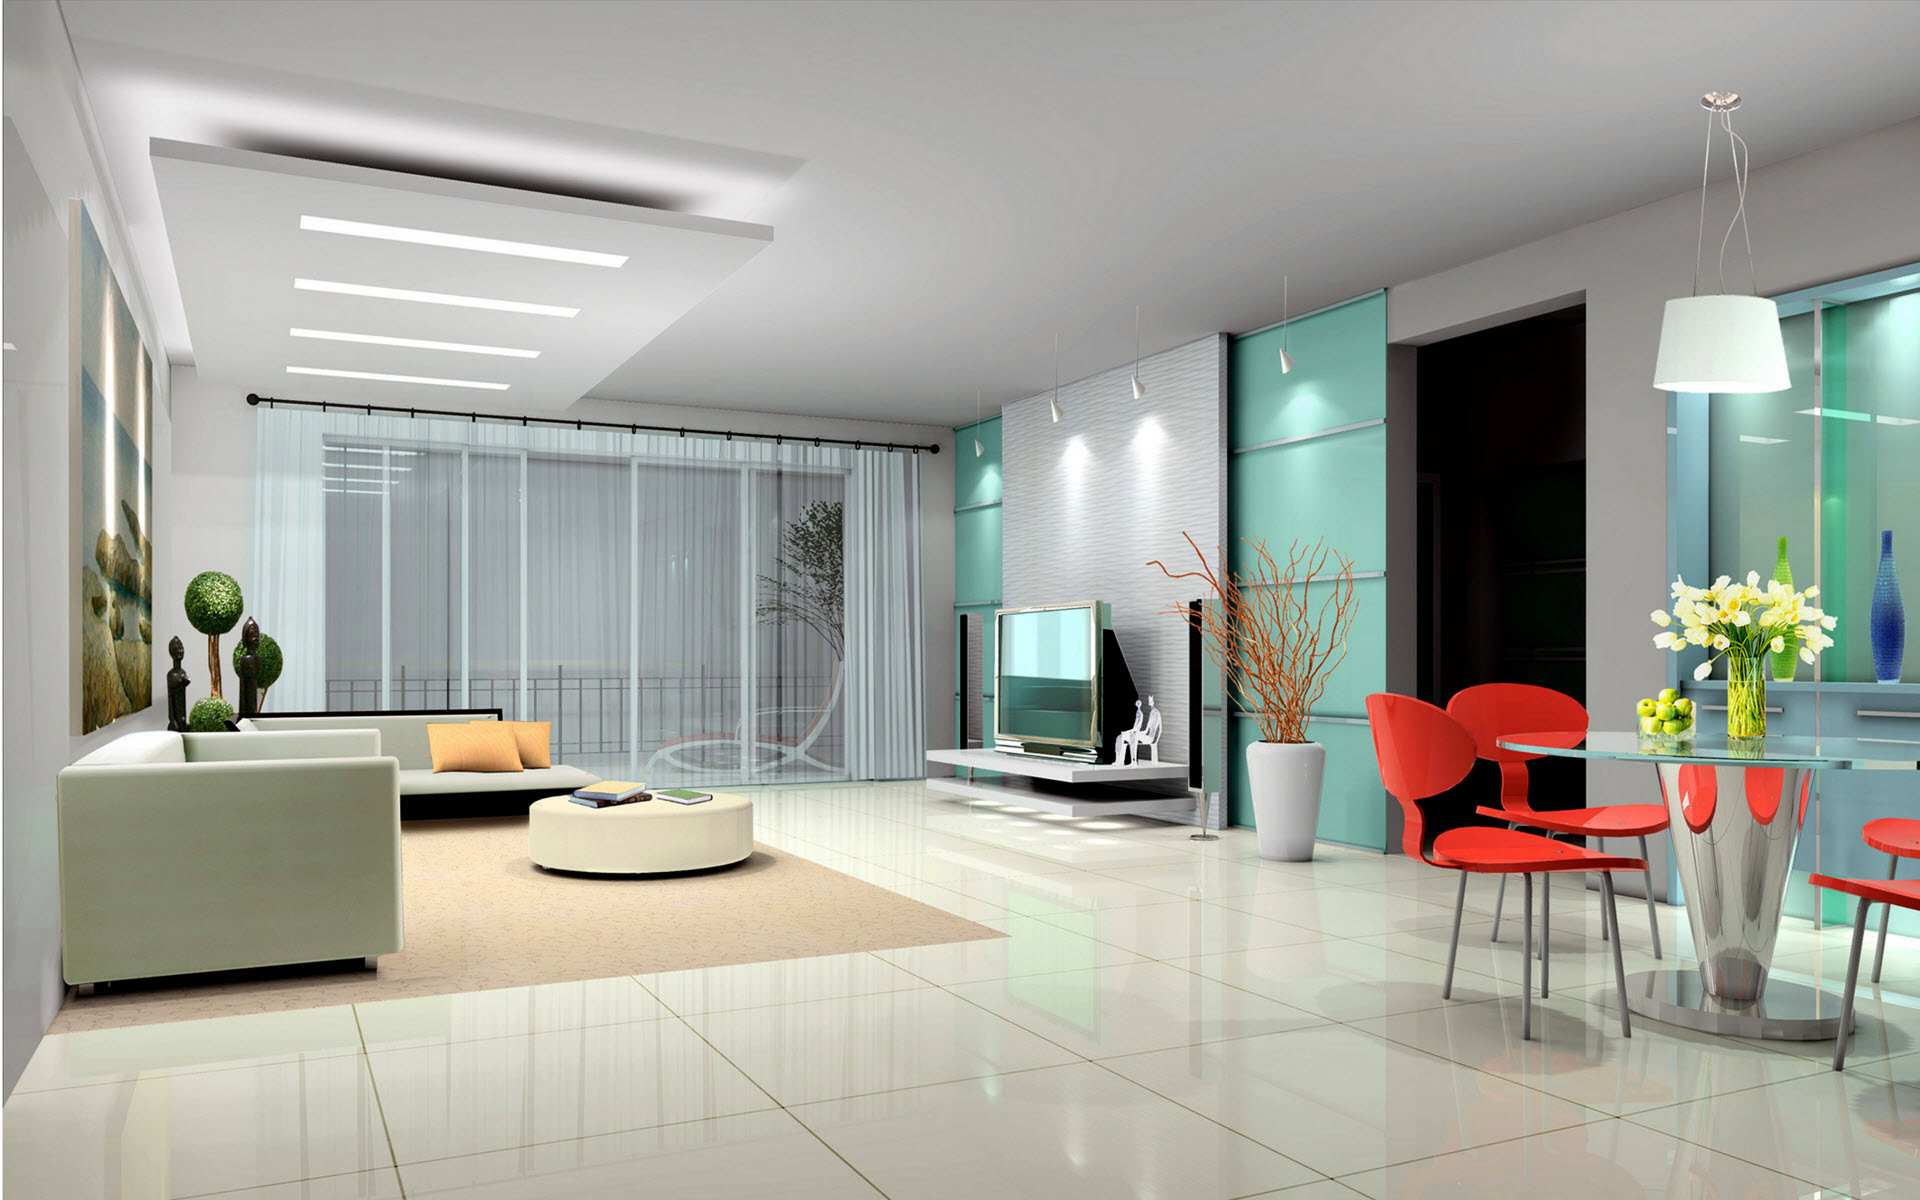 23 MODERN INTERIOR DESIGN IDEAS FOR THE PERFECT HOME ... on Modern House Ideas Interior  id=31188